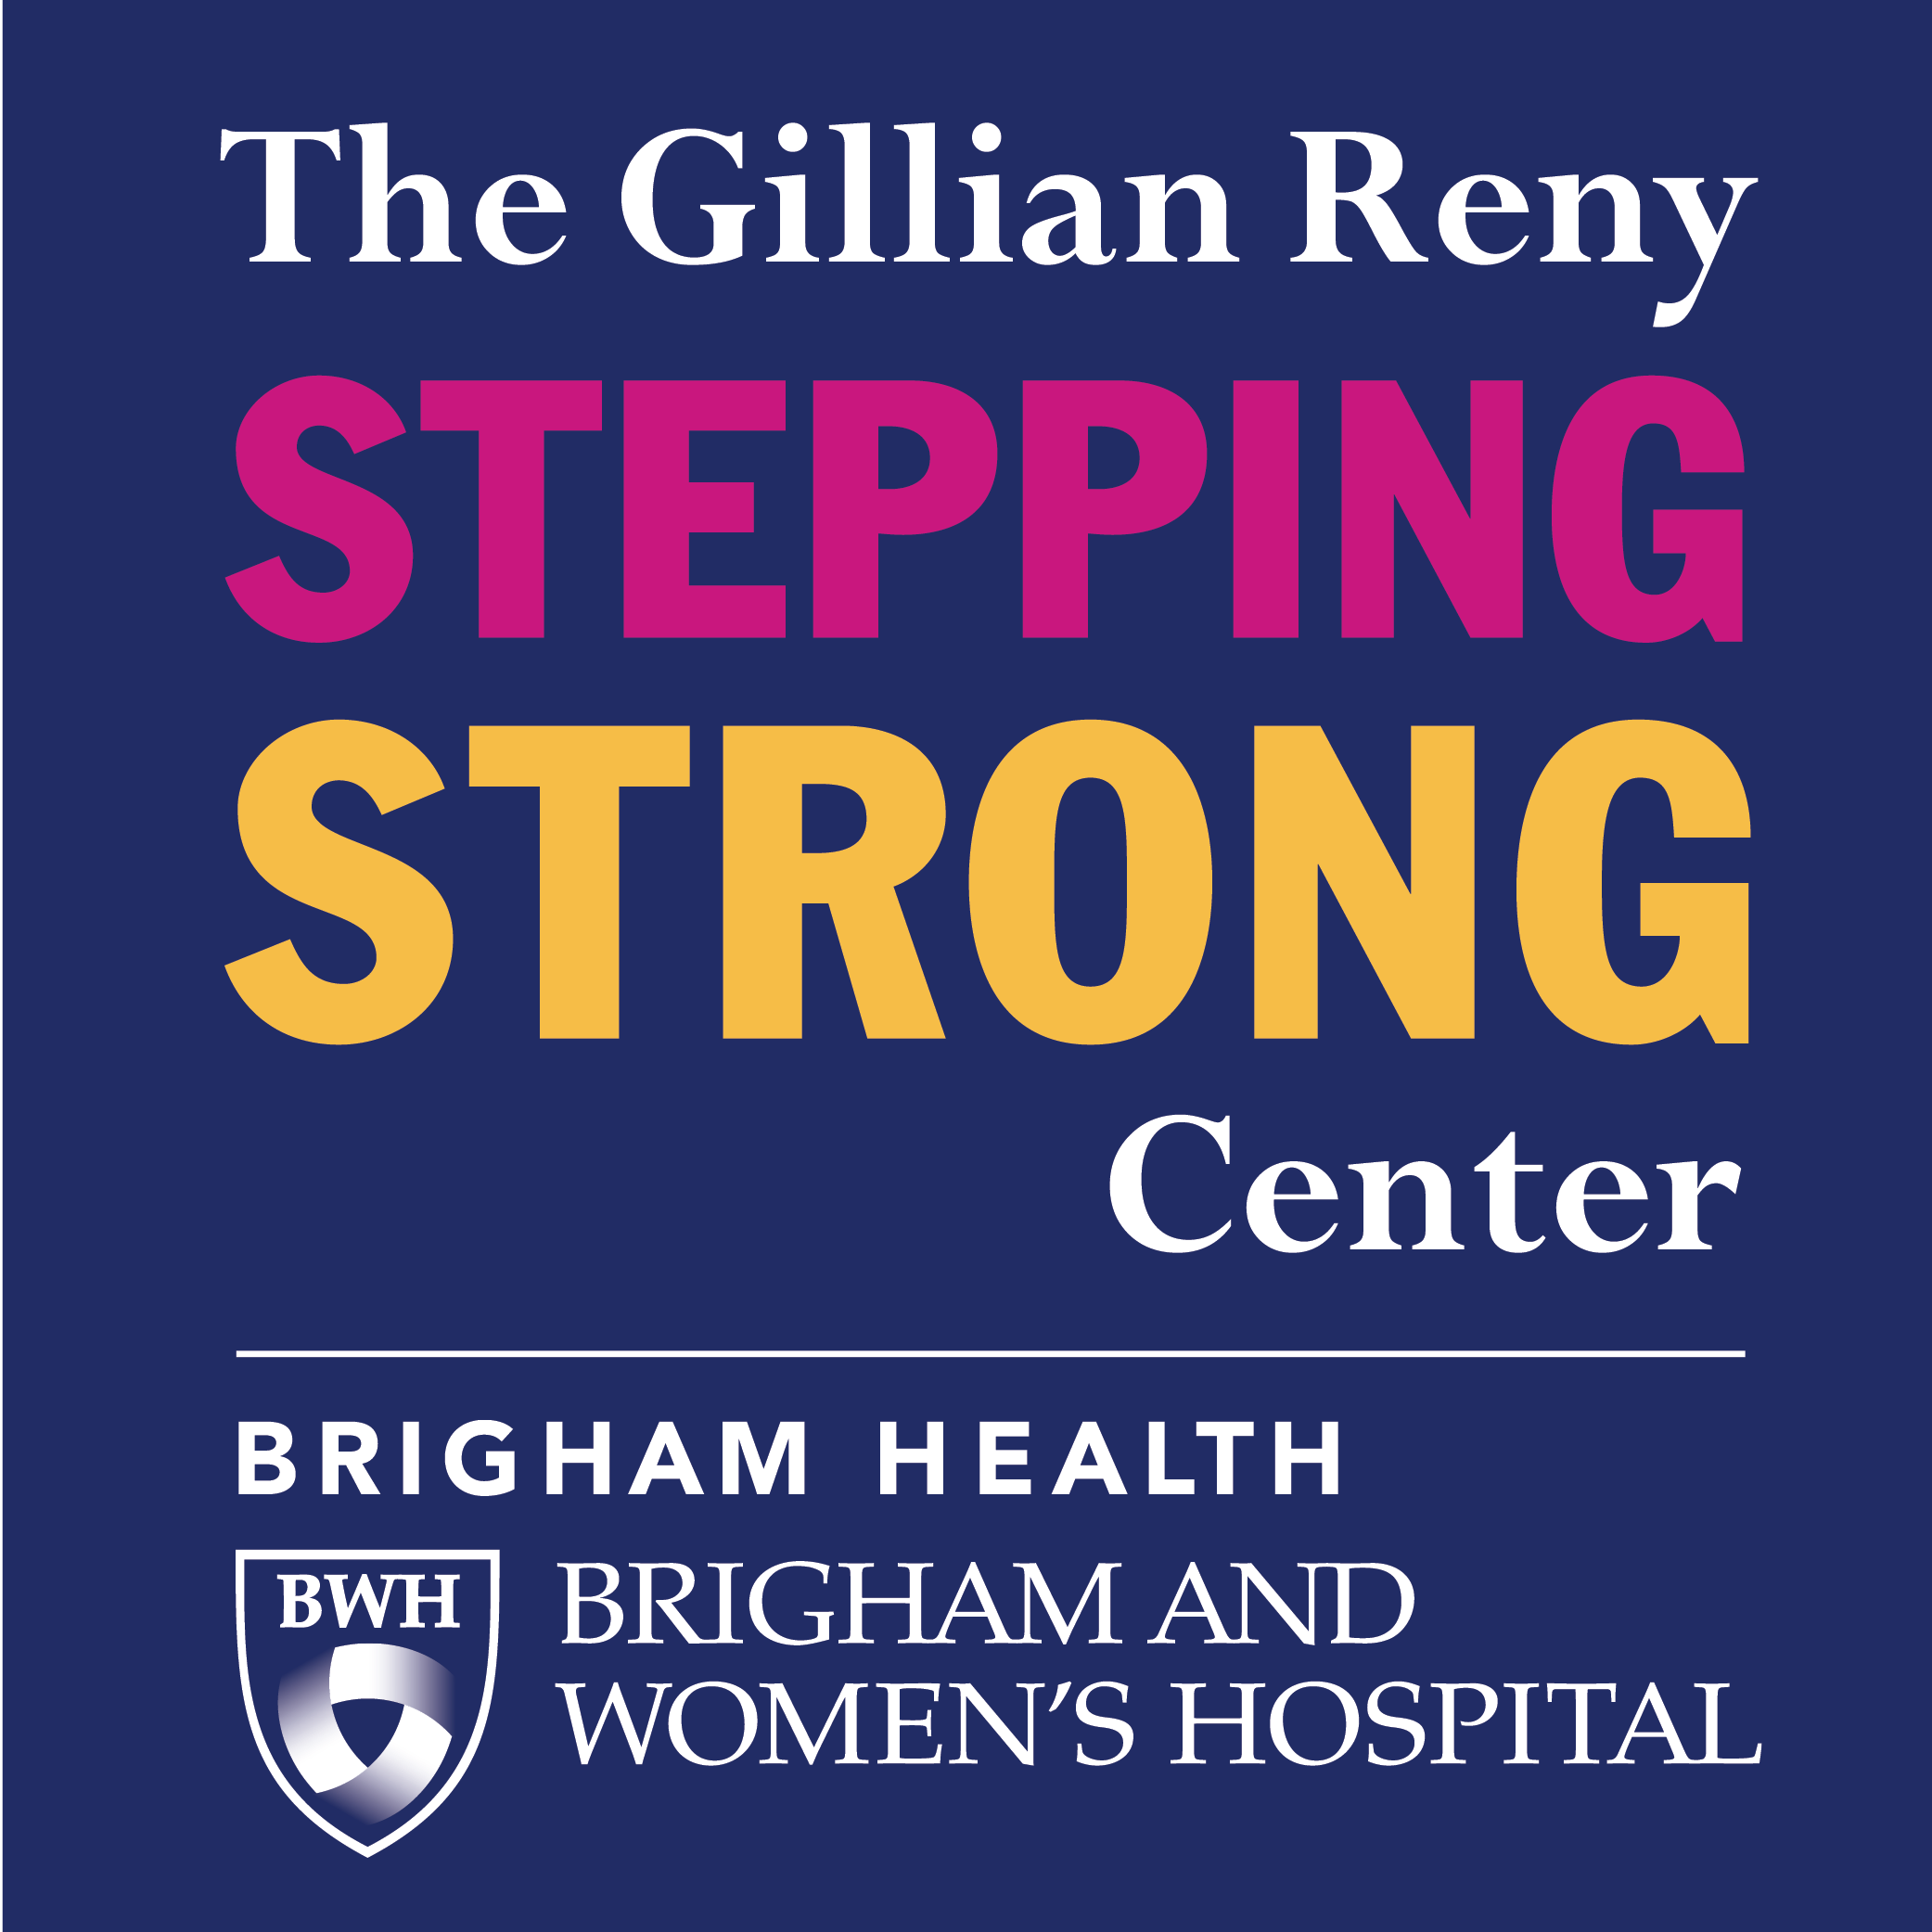 Brigham and Women's Hospital's Photo